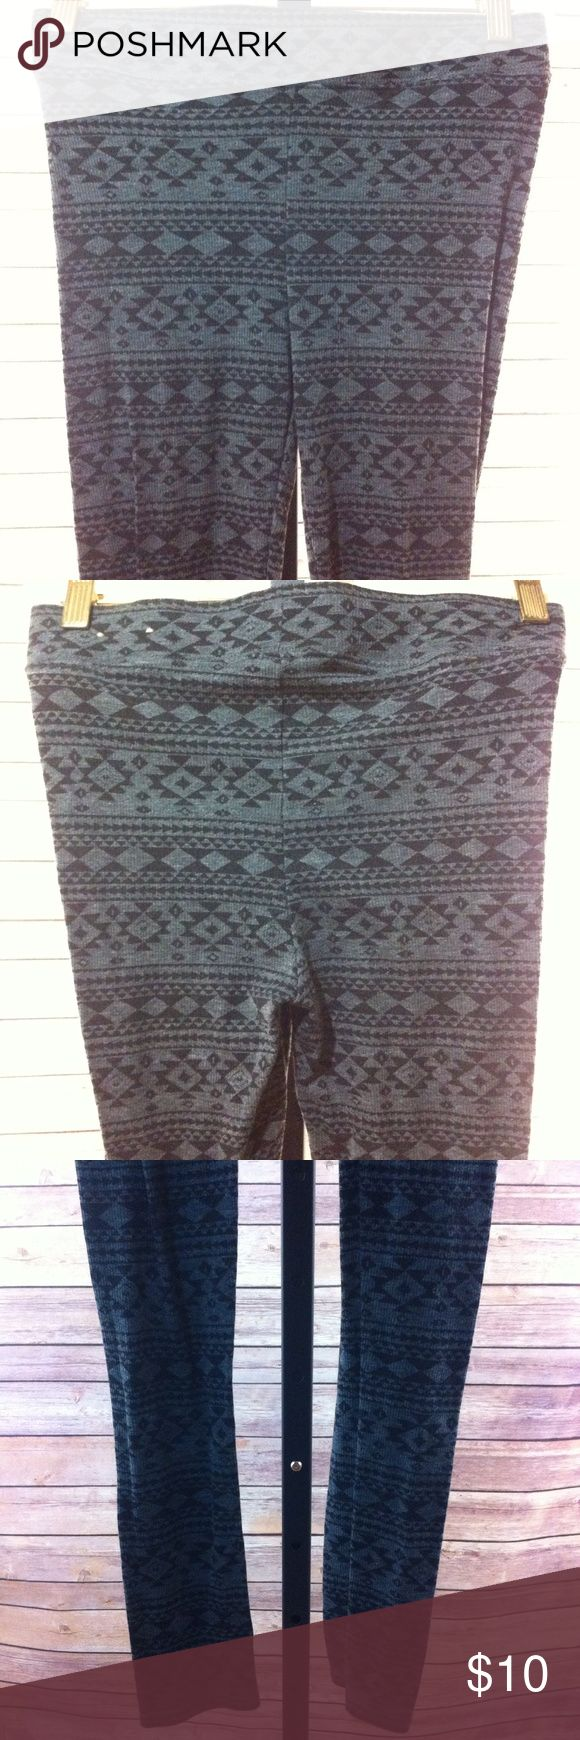 "American Eagle Aztec Print Hi Waist leggings SZ S American Eagle Aztec print leggings - size small - gray / black - ribbed - elastic high waist - waist 26"" unstretched - rise 9.5"" - inseam 30"" - ankle 7"" around - no fading, stains or holes American Eagle Outfitters Pants Leggings"